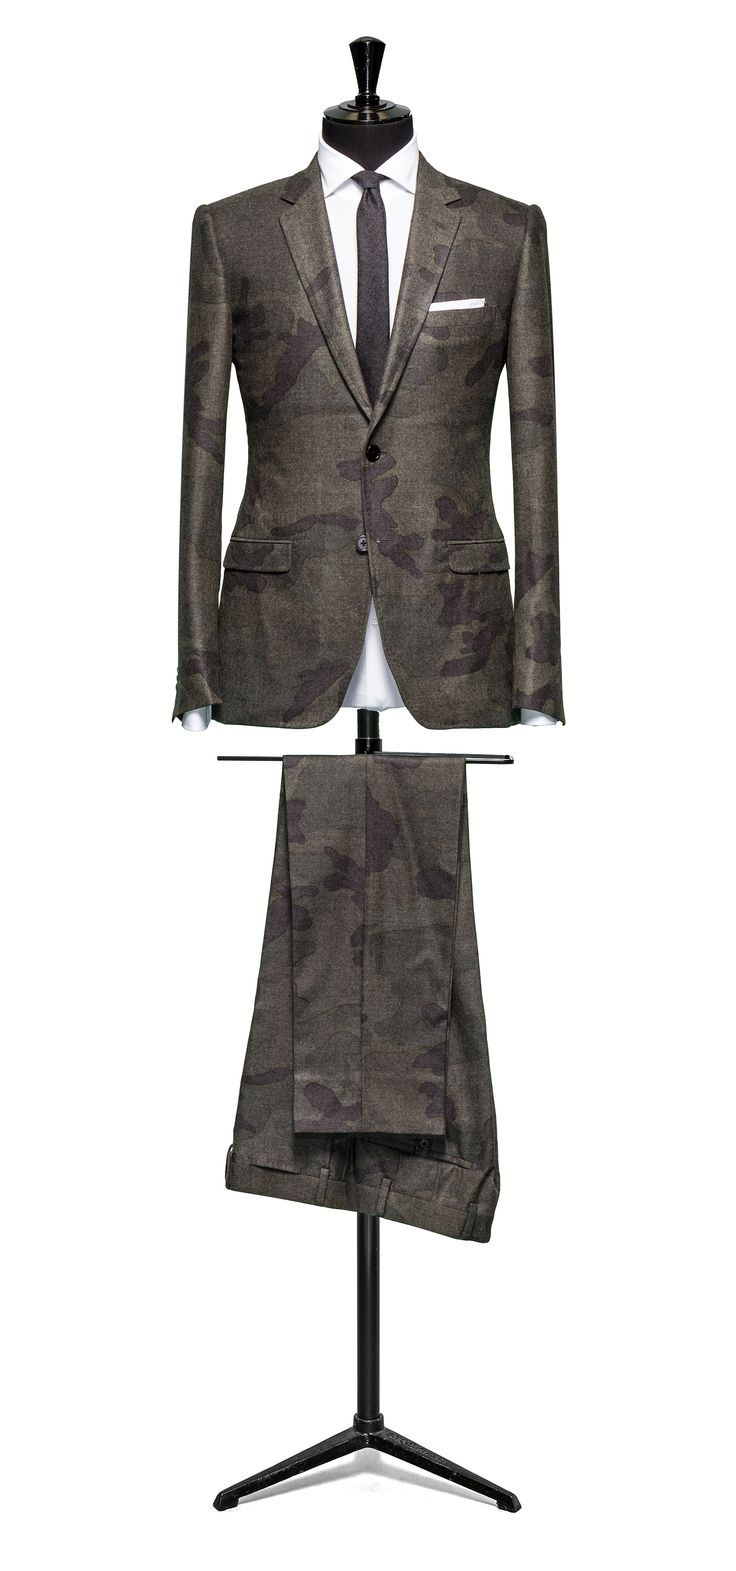 Double face camo suit  S120 http://www.tailormadelondon.com/shop/tailored-suit-fabric-4300a-camo-olive/